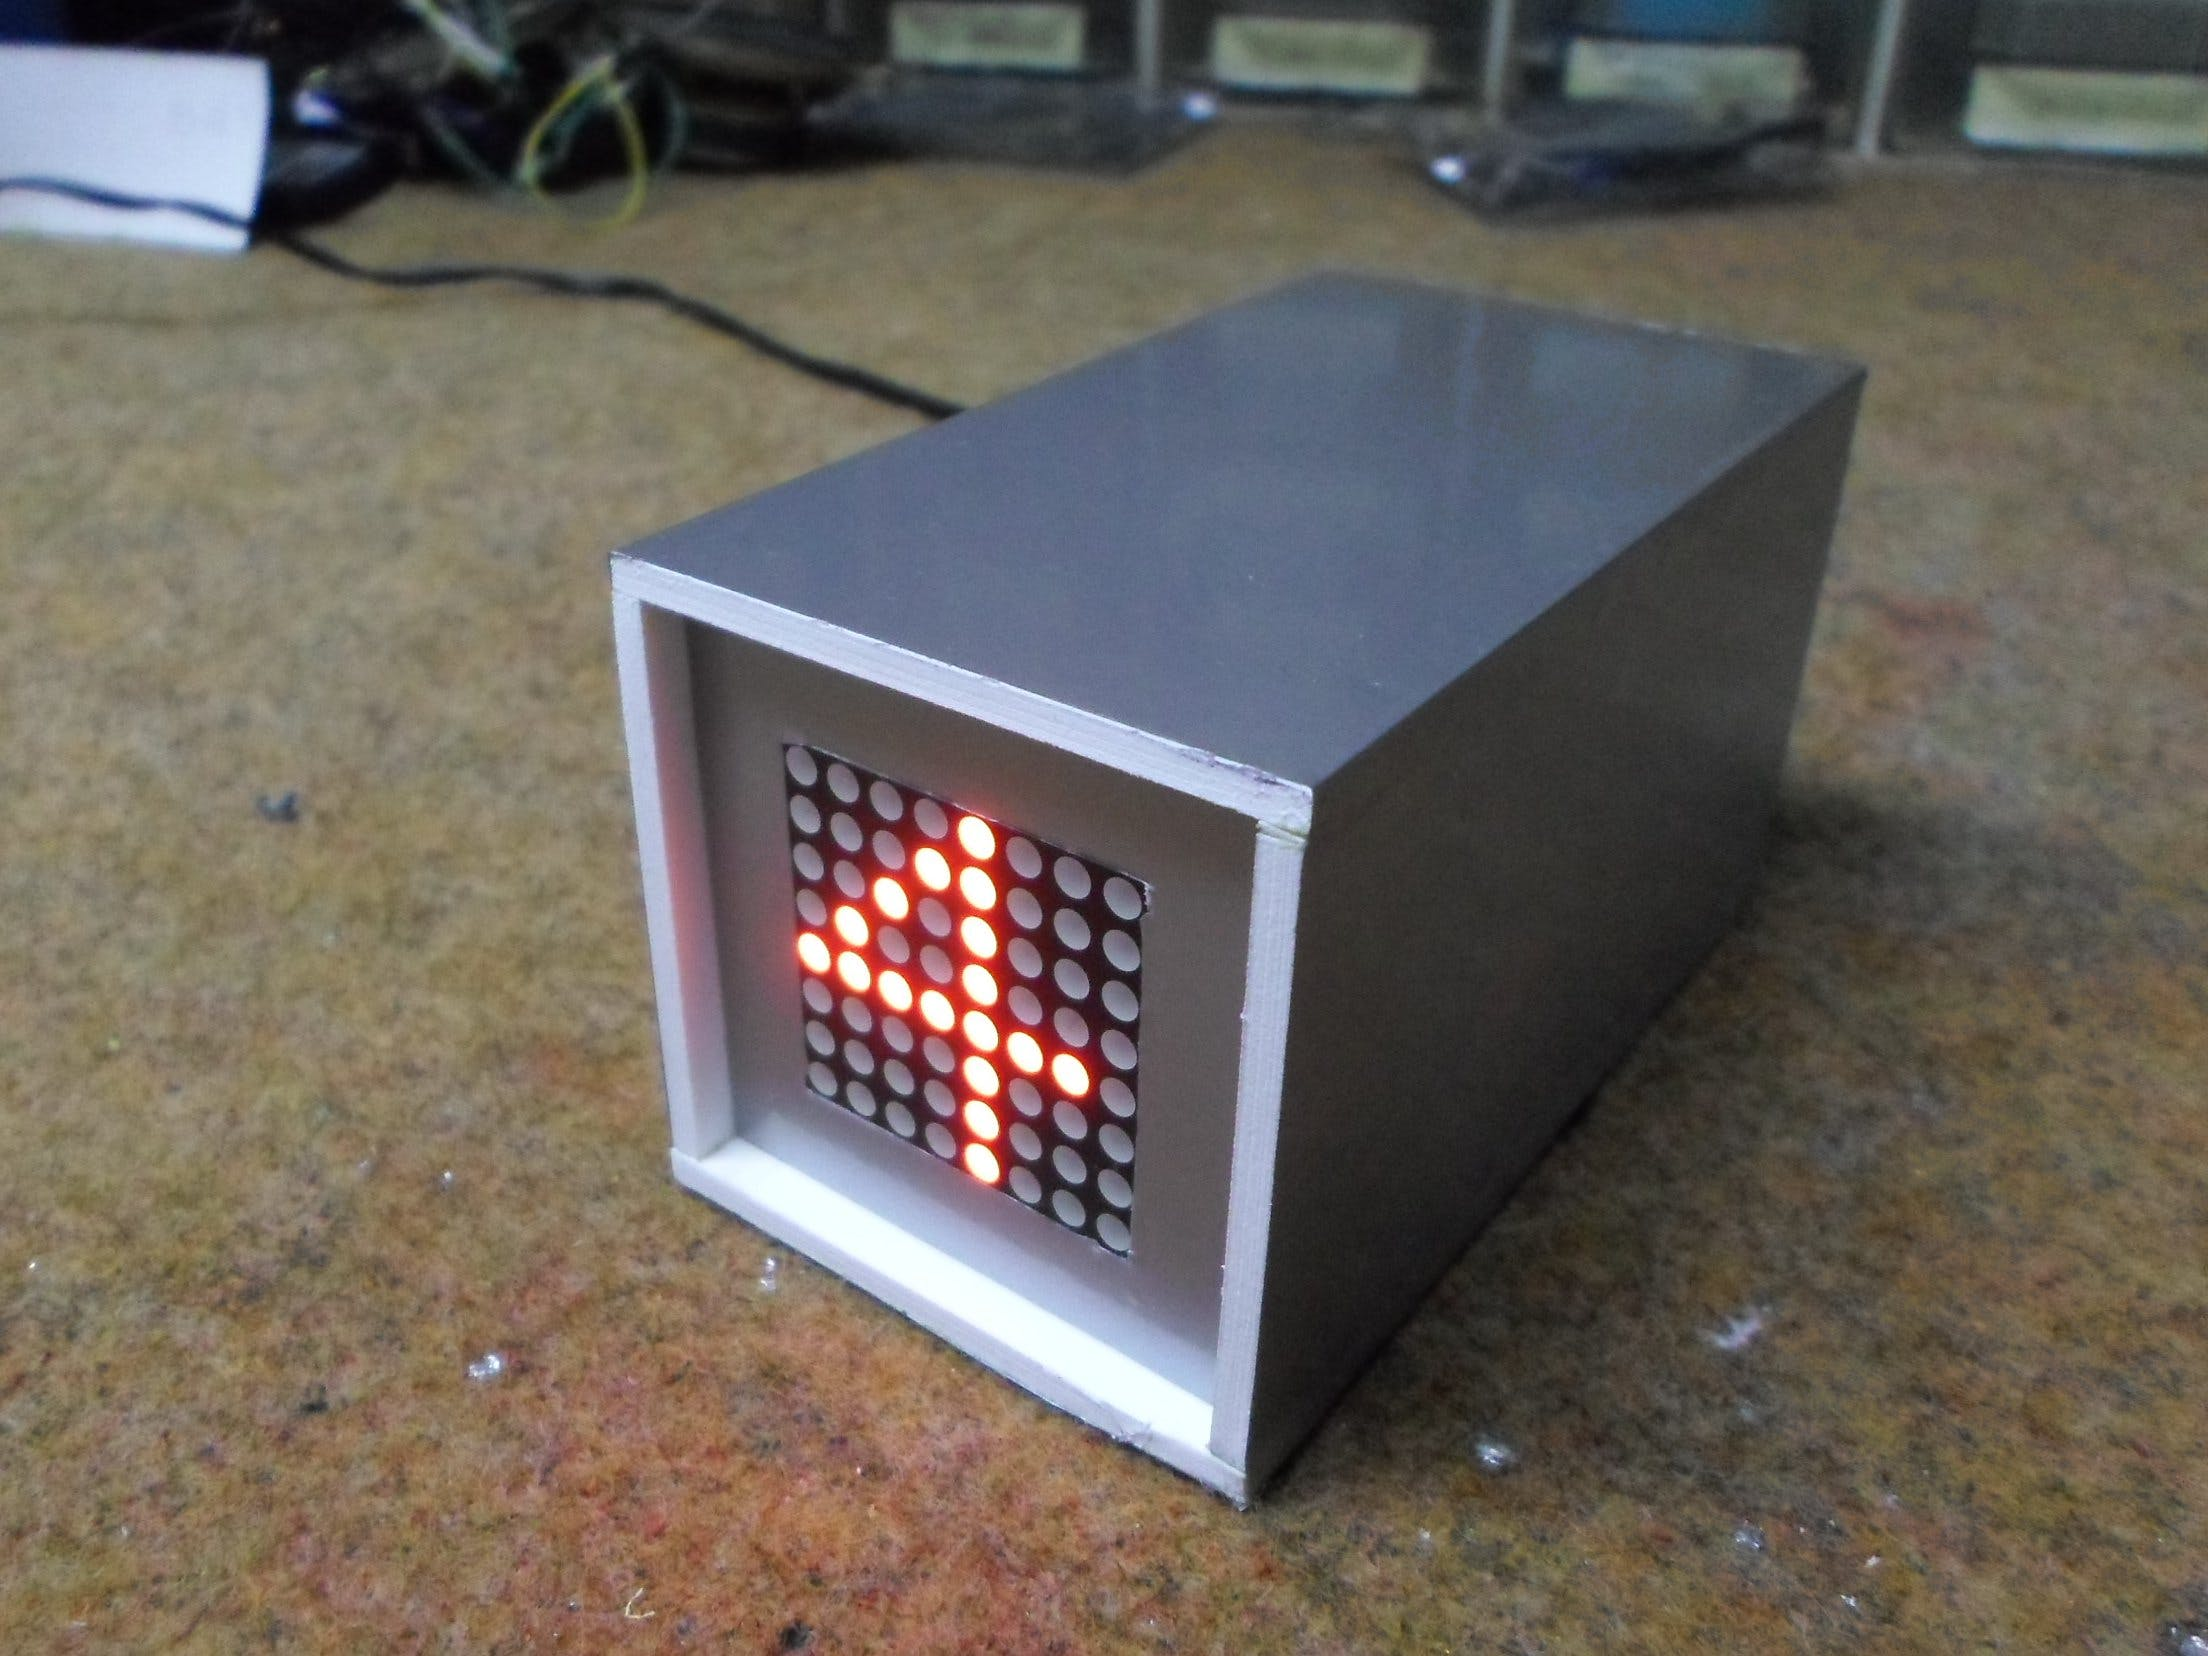 Single LED Matrix Arduino Flip Clock